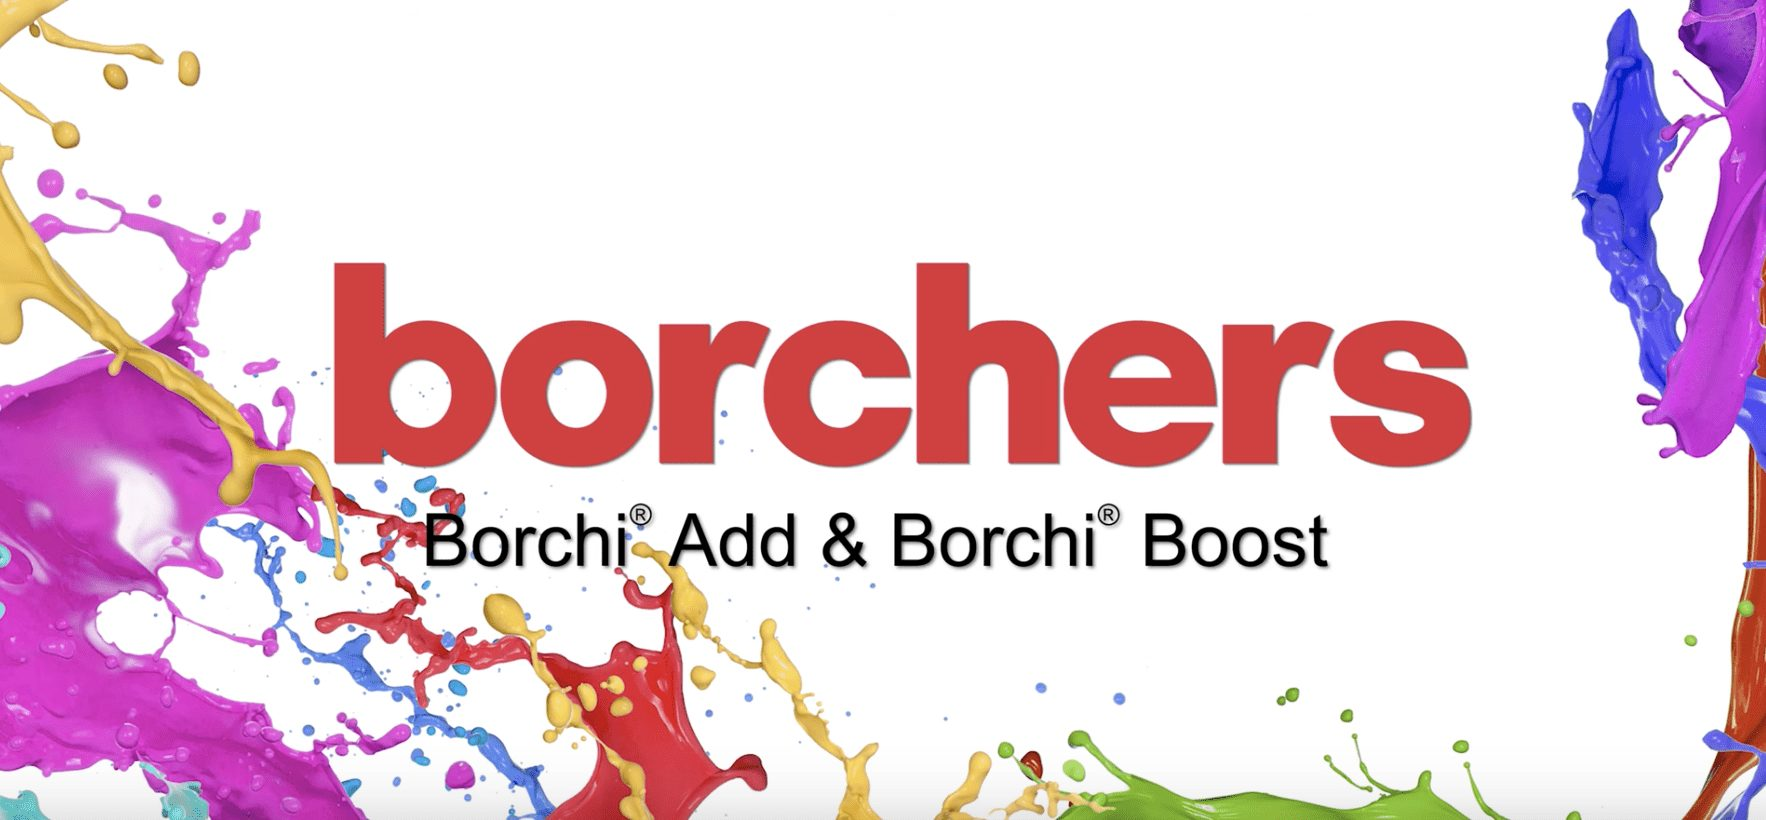 Borchers Boost Video